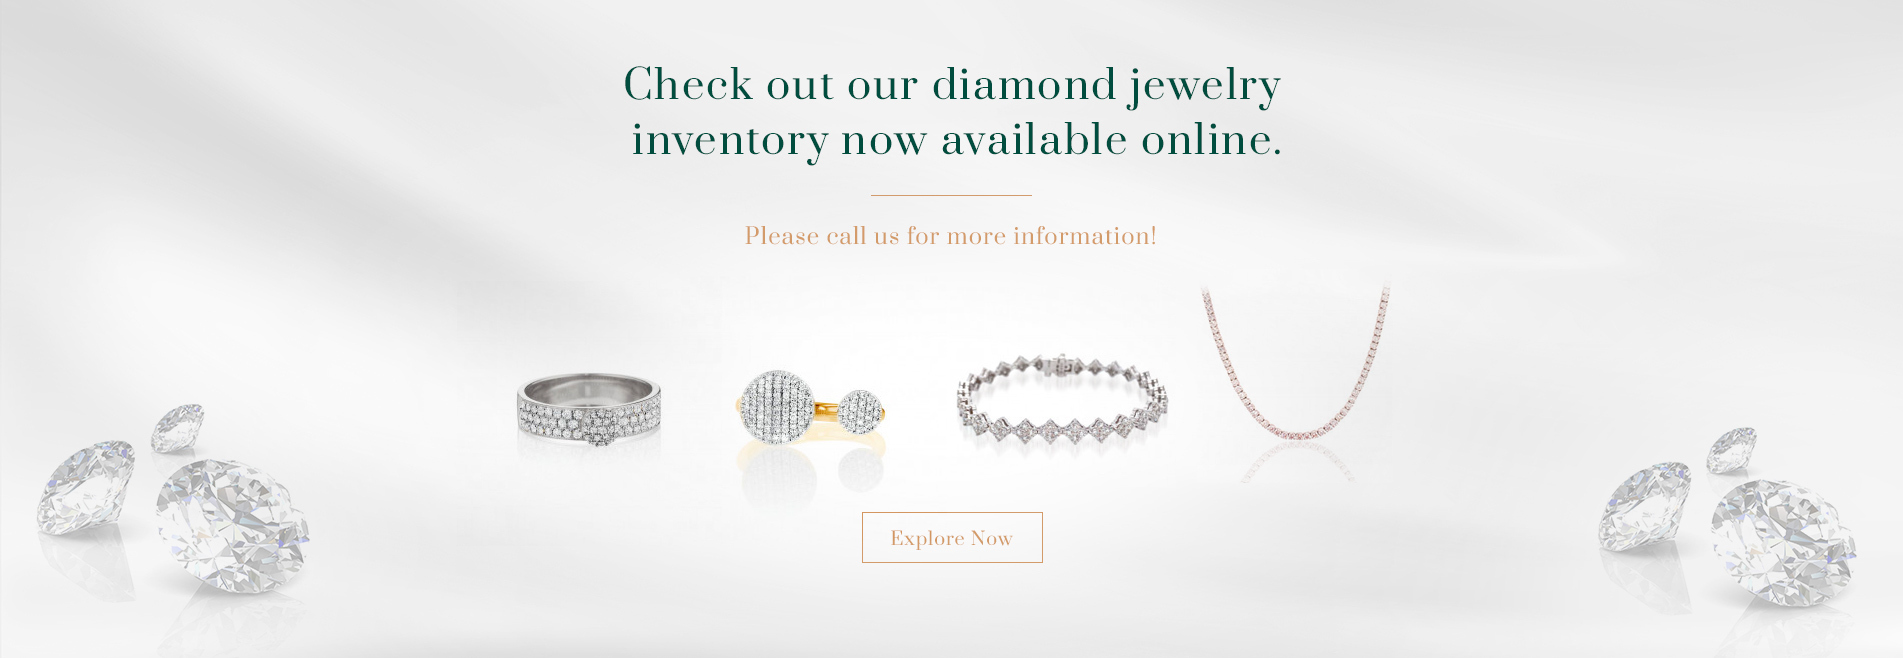 Diamond Jewelry Inventory